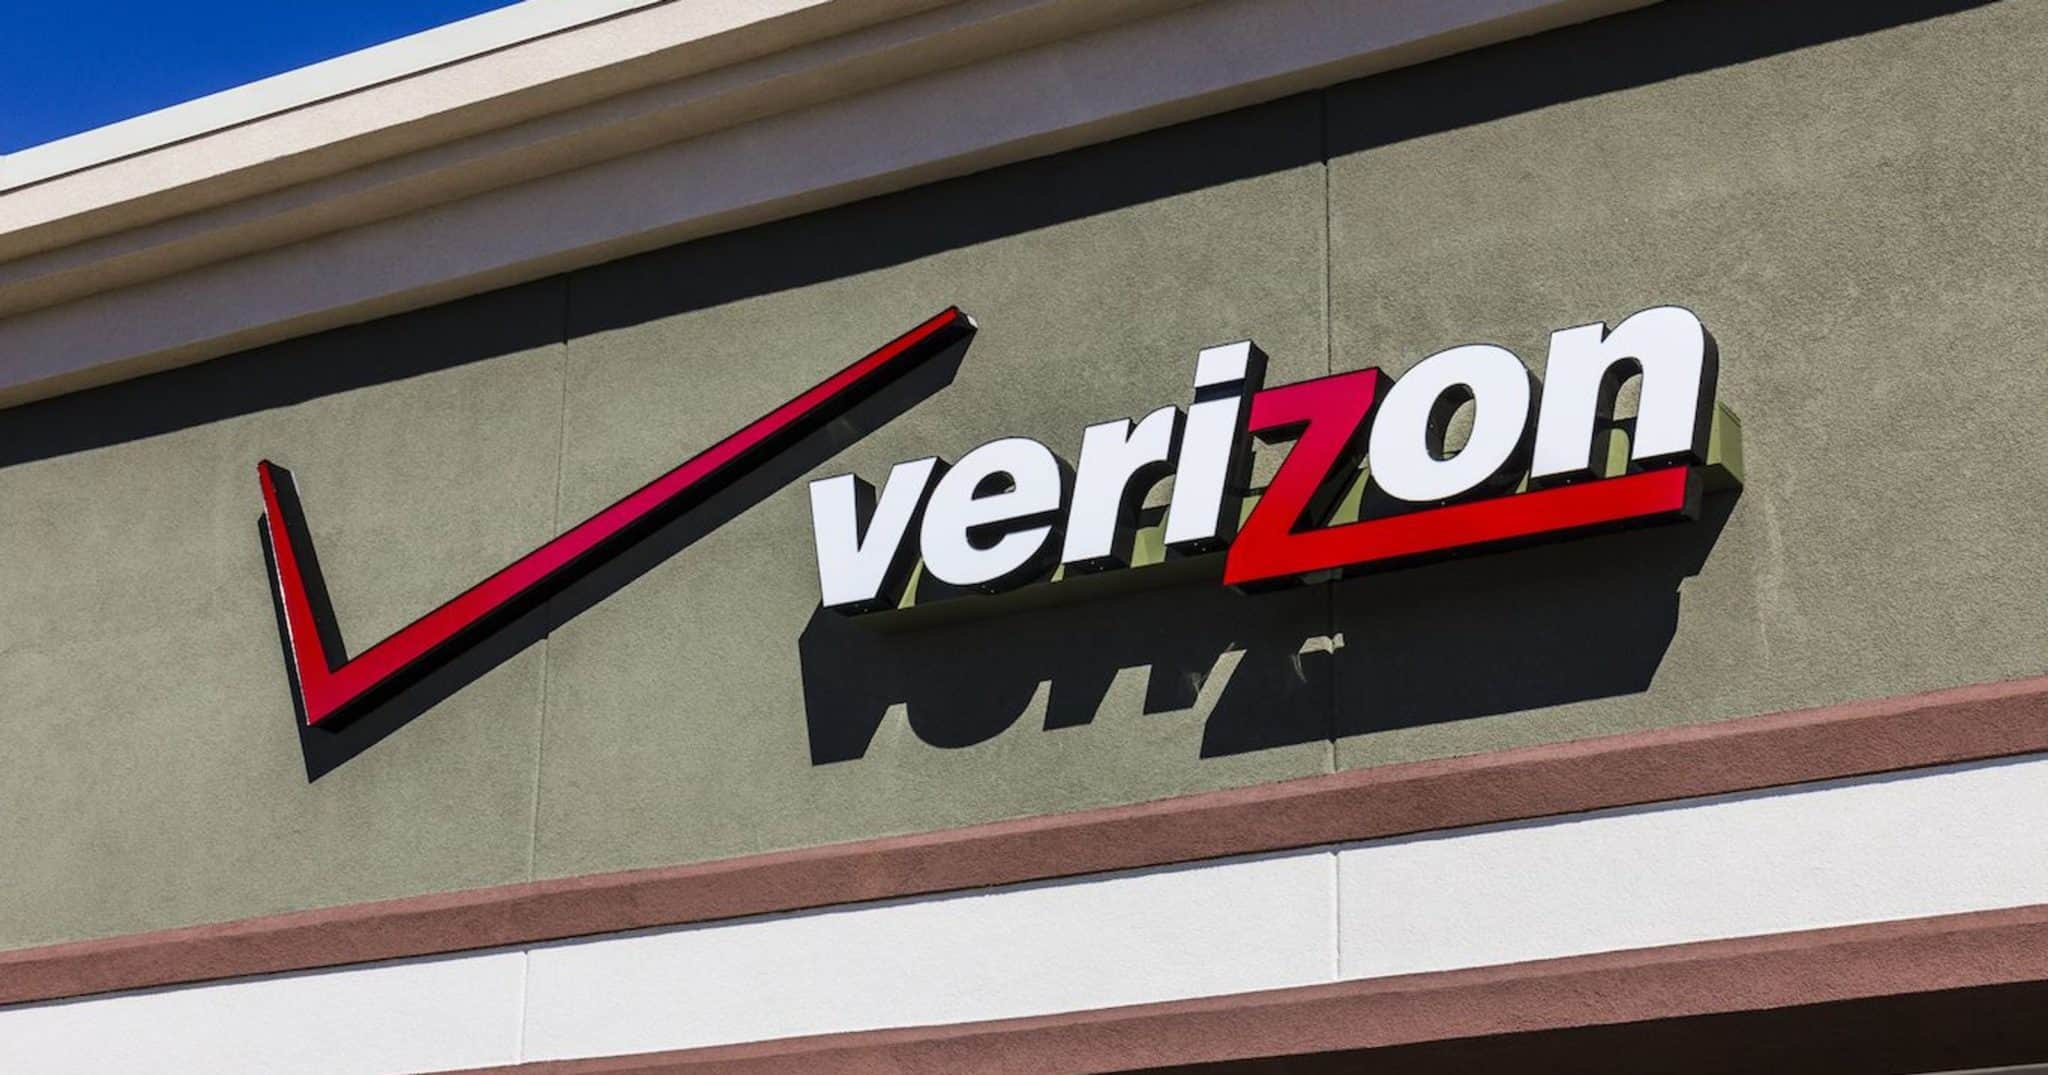 Verizon Expands LTE Home Internet To 189 Remote Markets Across The US